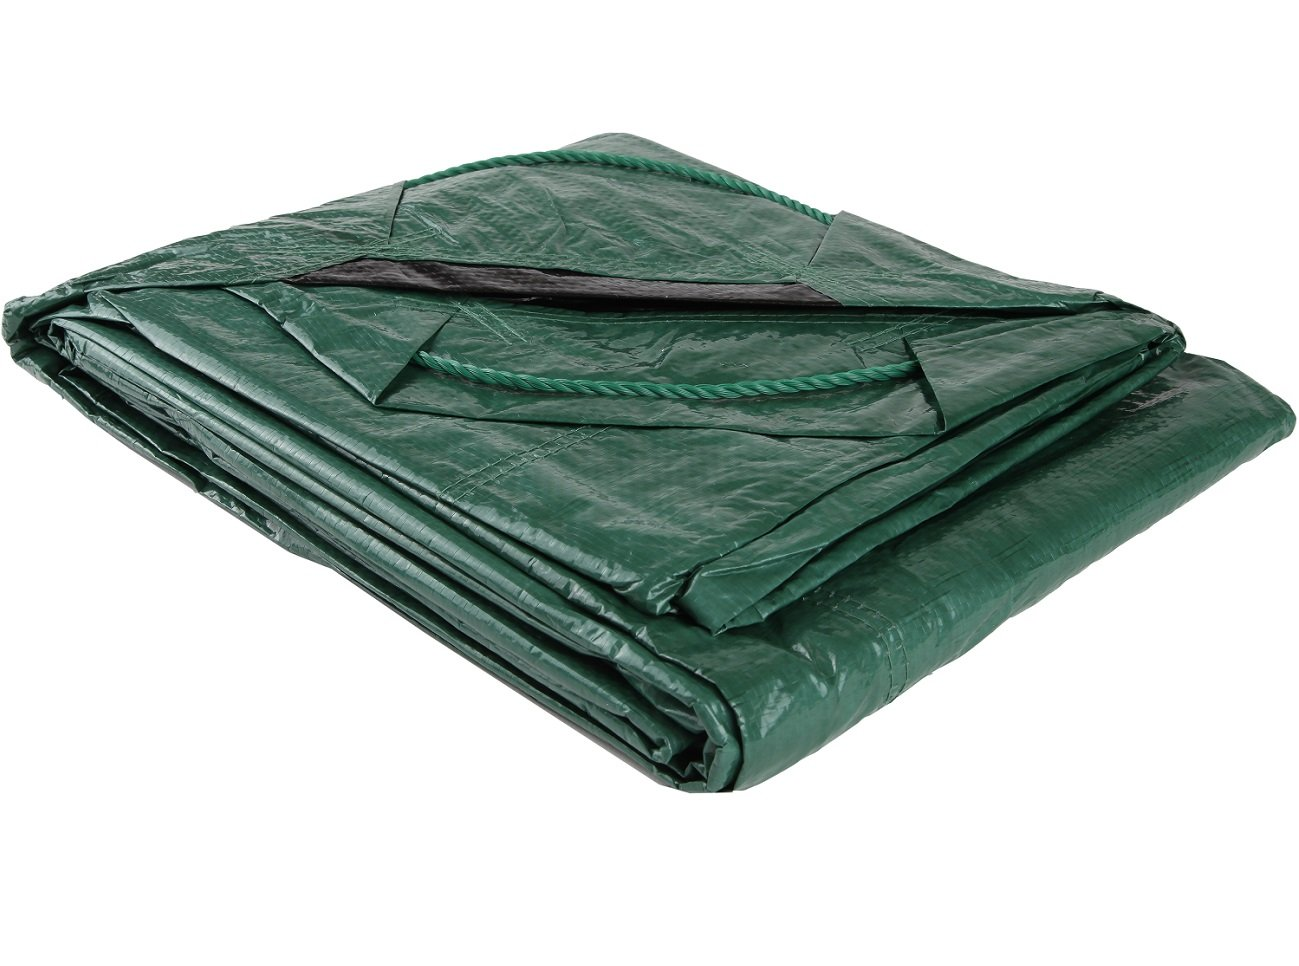 Shefko 0-99393-10909-4 Yard Tarp 8.2 X 8.2 - Versatile Drawstring Tarp for Yard Clean Ups - Convenient and Handy - Formed Into an Instant Dragging Bag - Ideal as BBQ Grill and Outdoors Furniture Cover